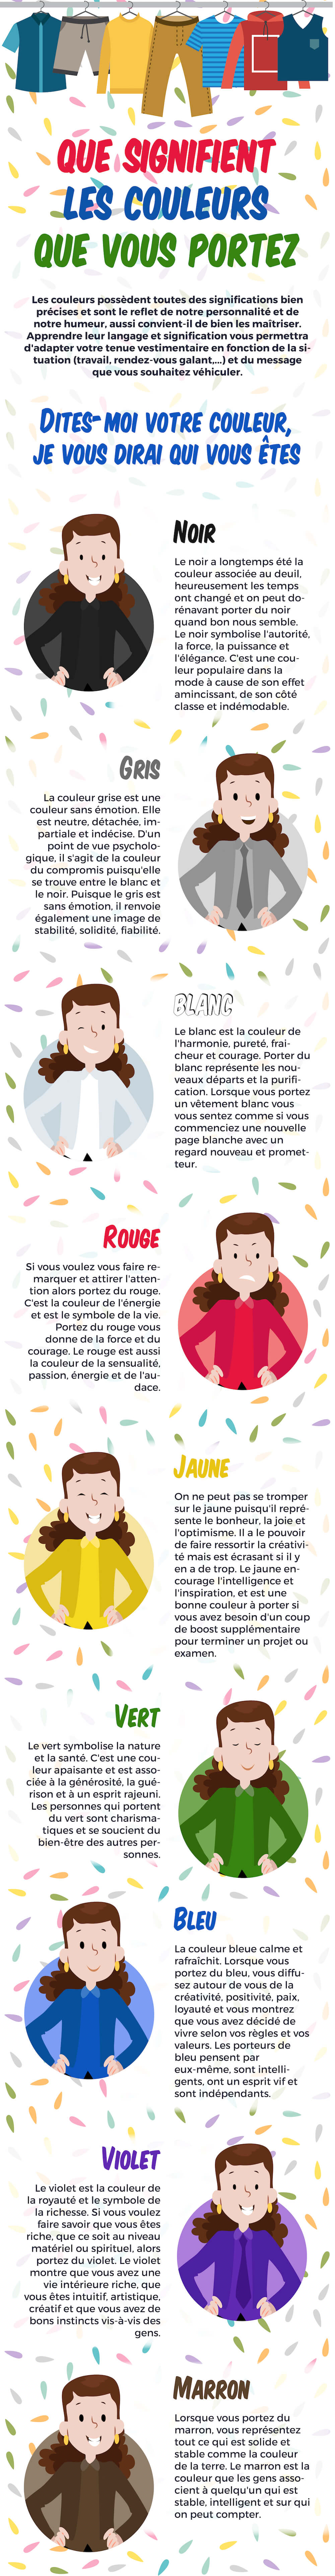 Infographie signification couleurs femme